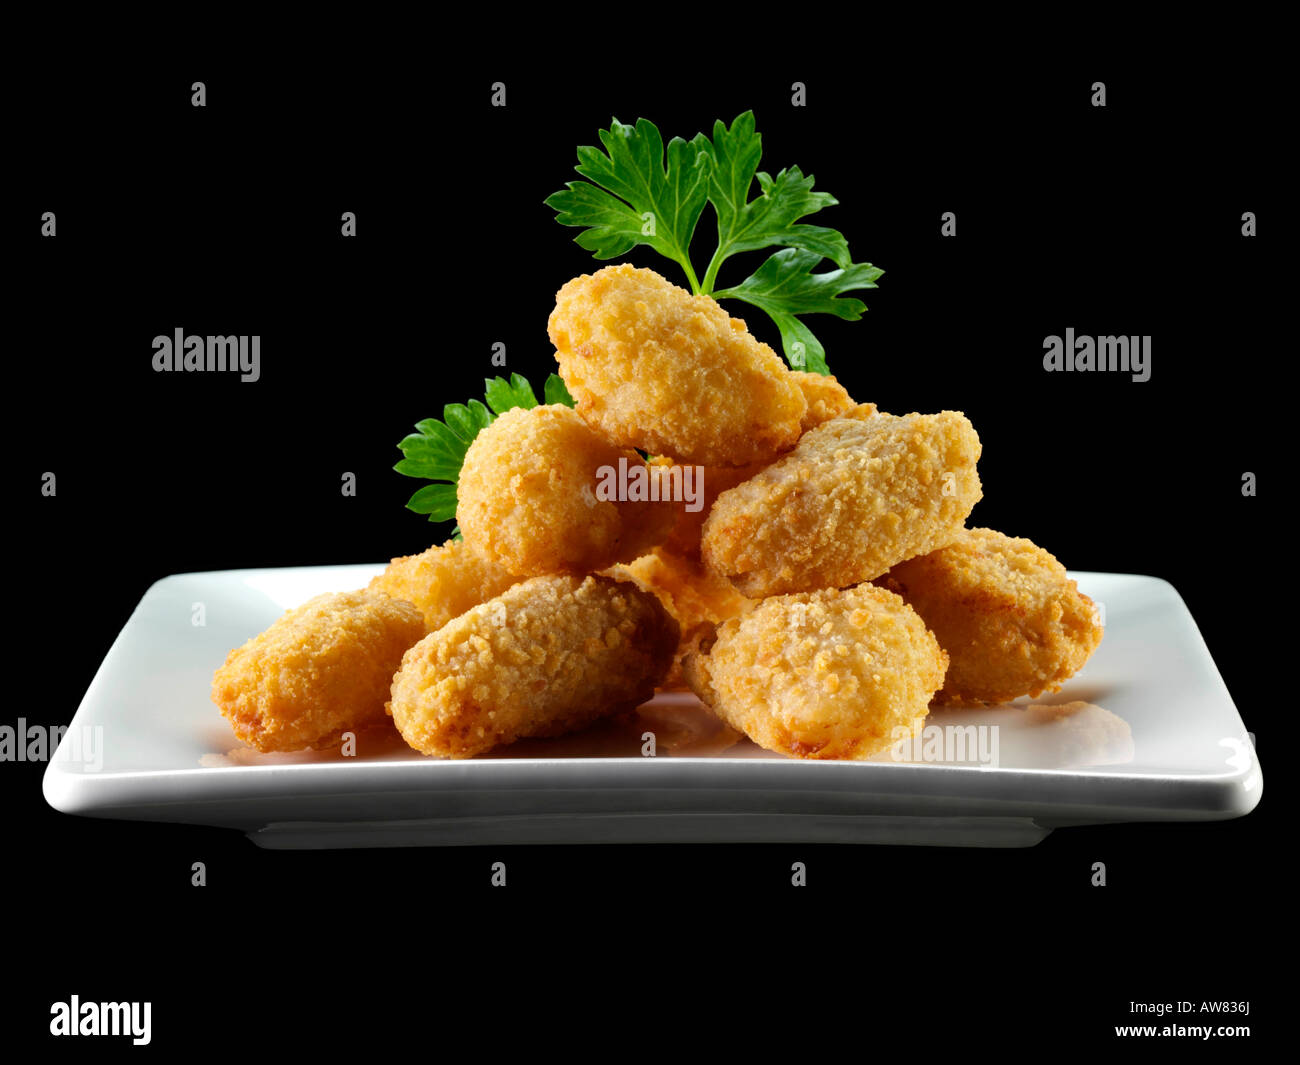 Scampi prawn nuggets kids meals editorial food Stock Photo